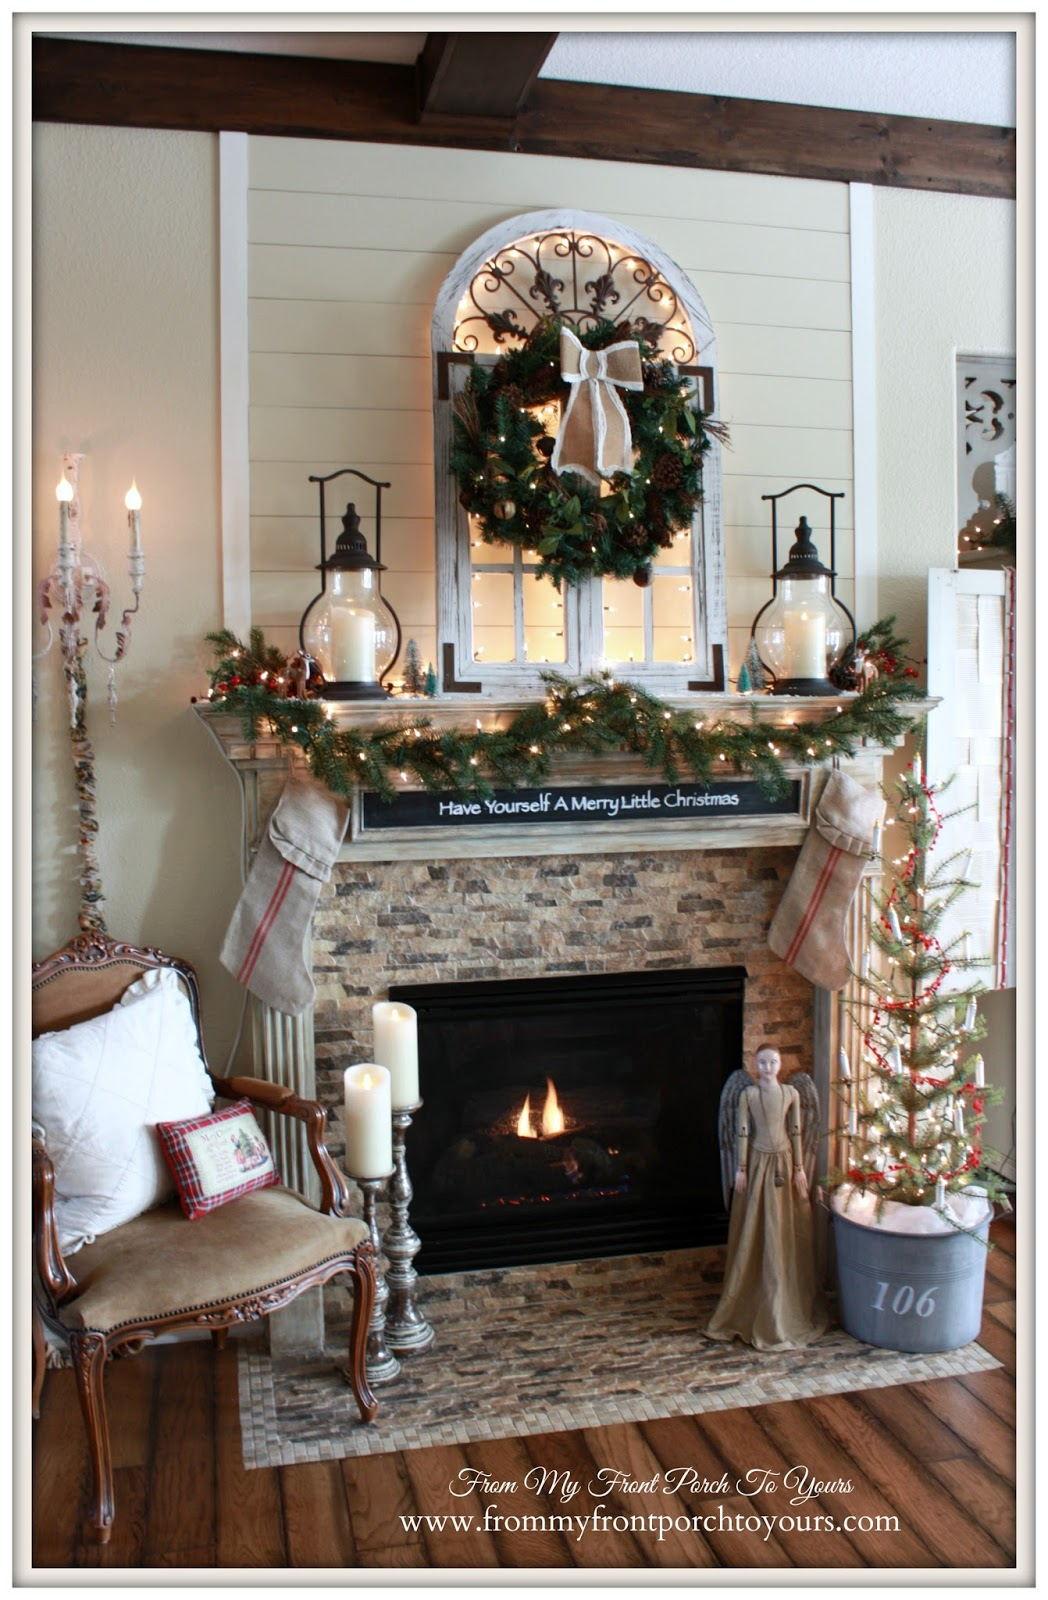 From My Front Porch To Yours: Cozy Farmhouse Christmas ...